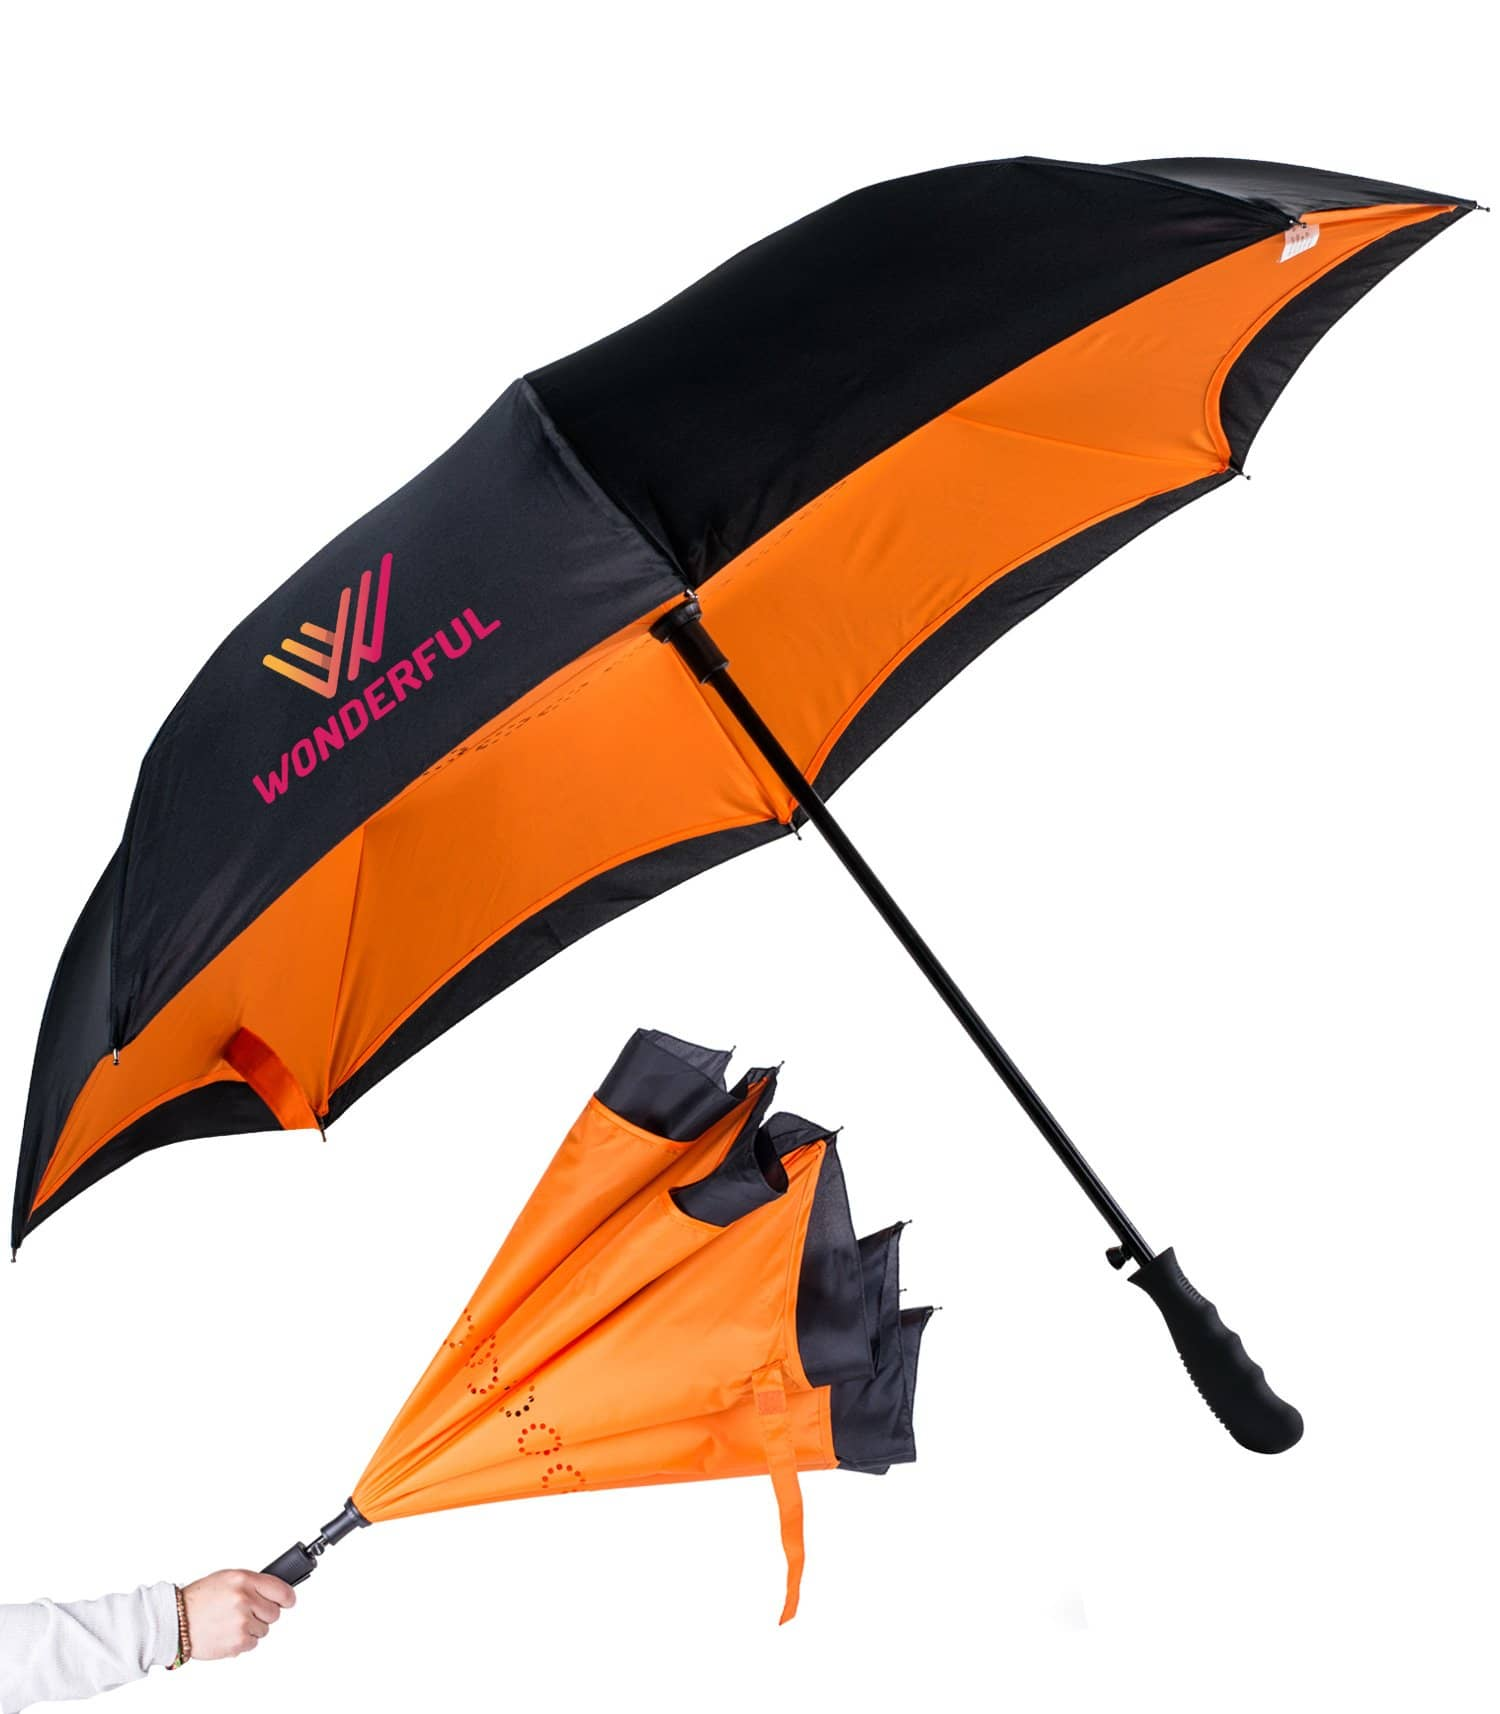 inside out custom umbrella orange black